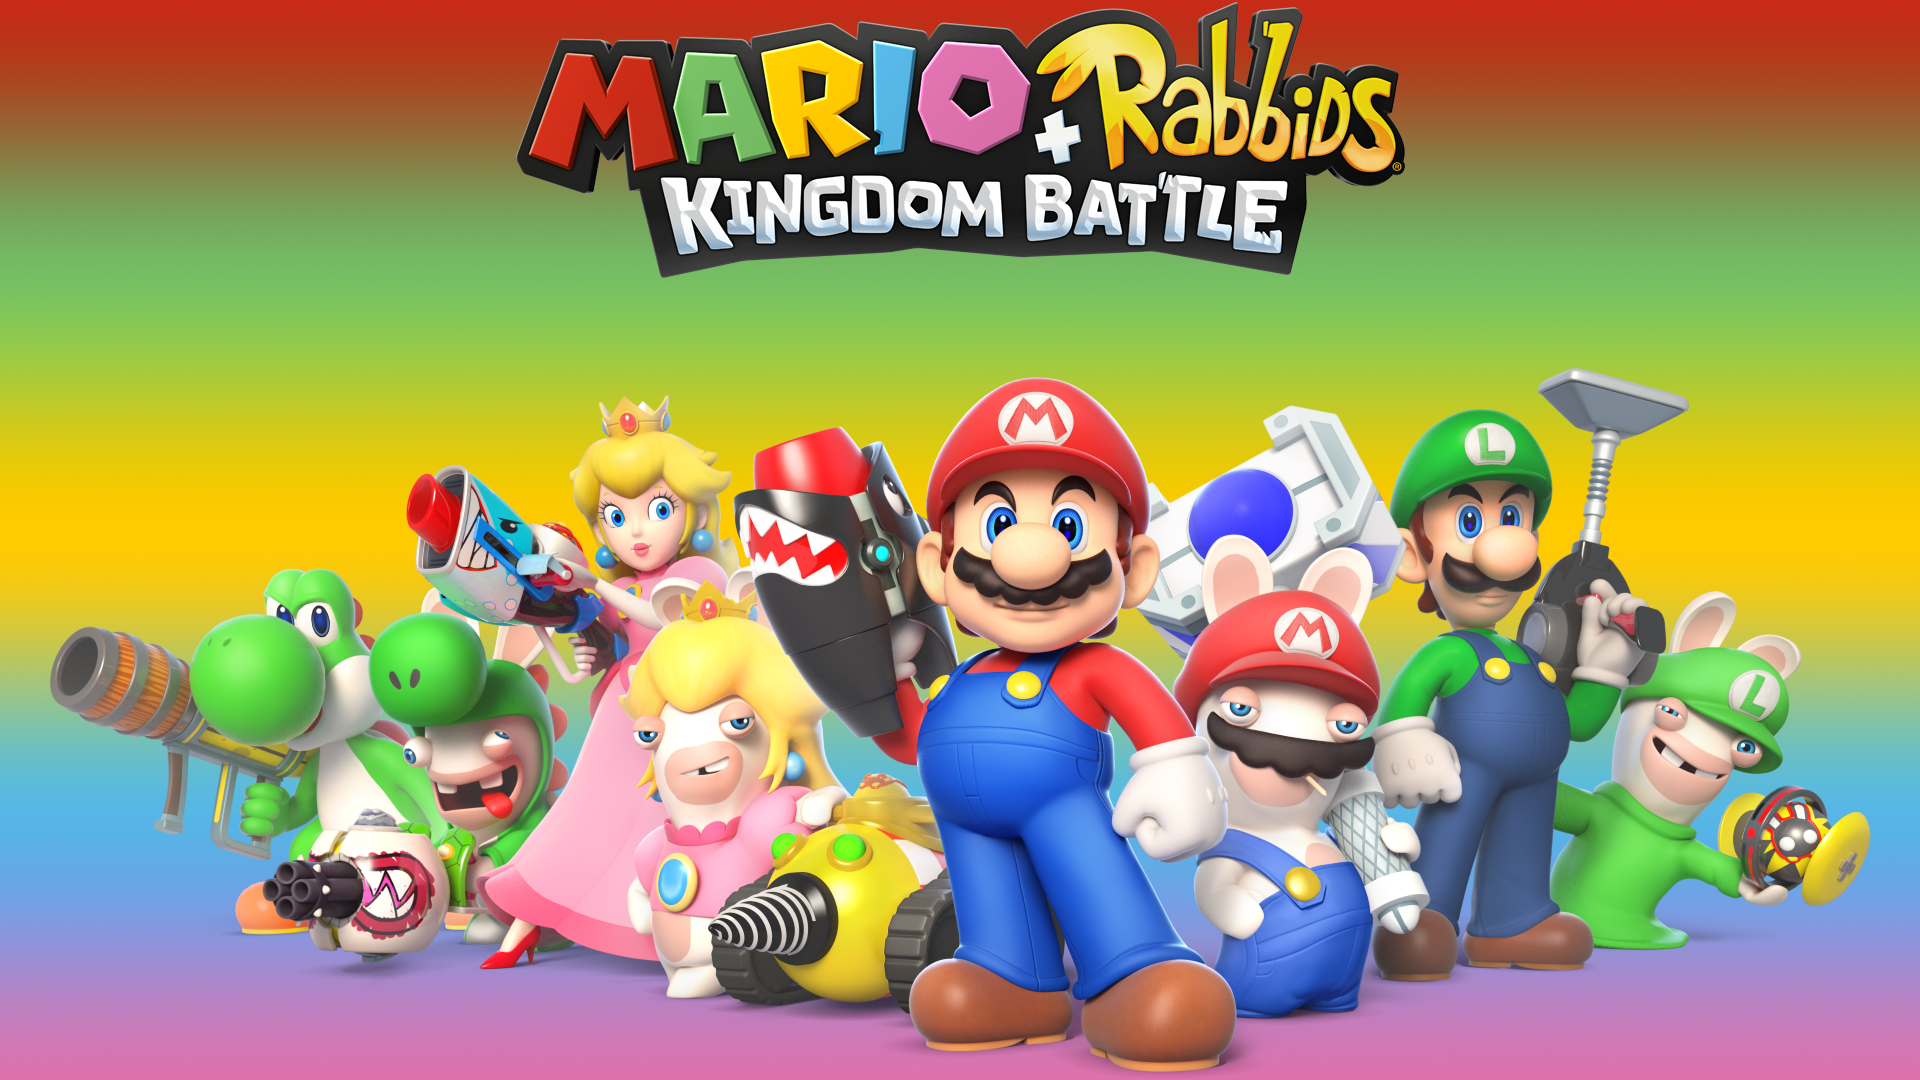 Video Game - Mario + Rabbids Kingdom Battle  Mario Luigi Princess Peach Yoshi Raving Rabbids Wallpaper